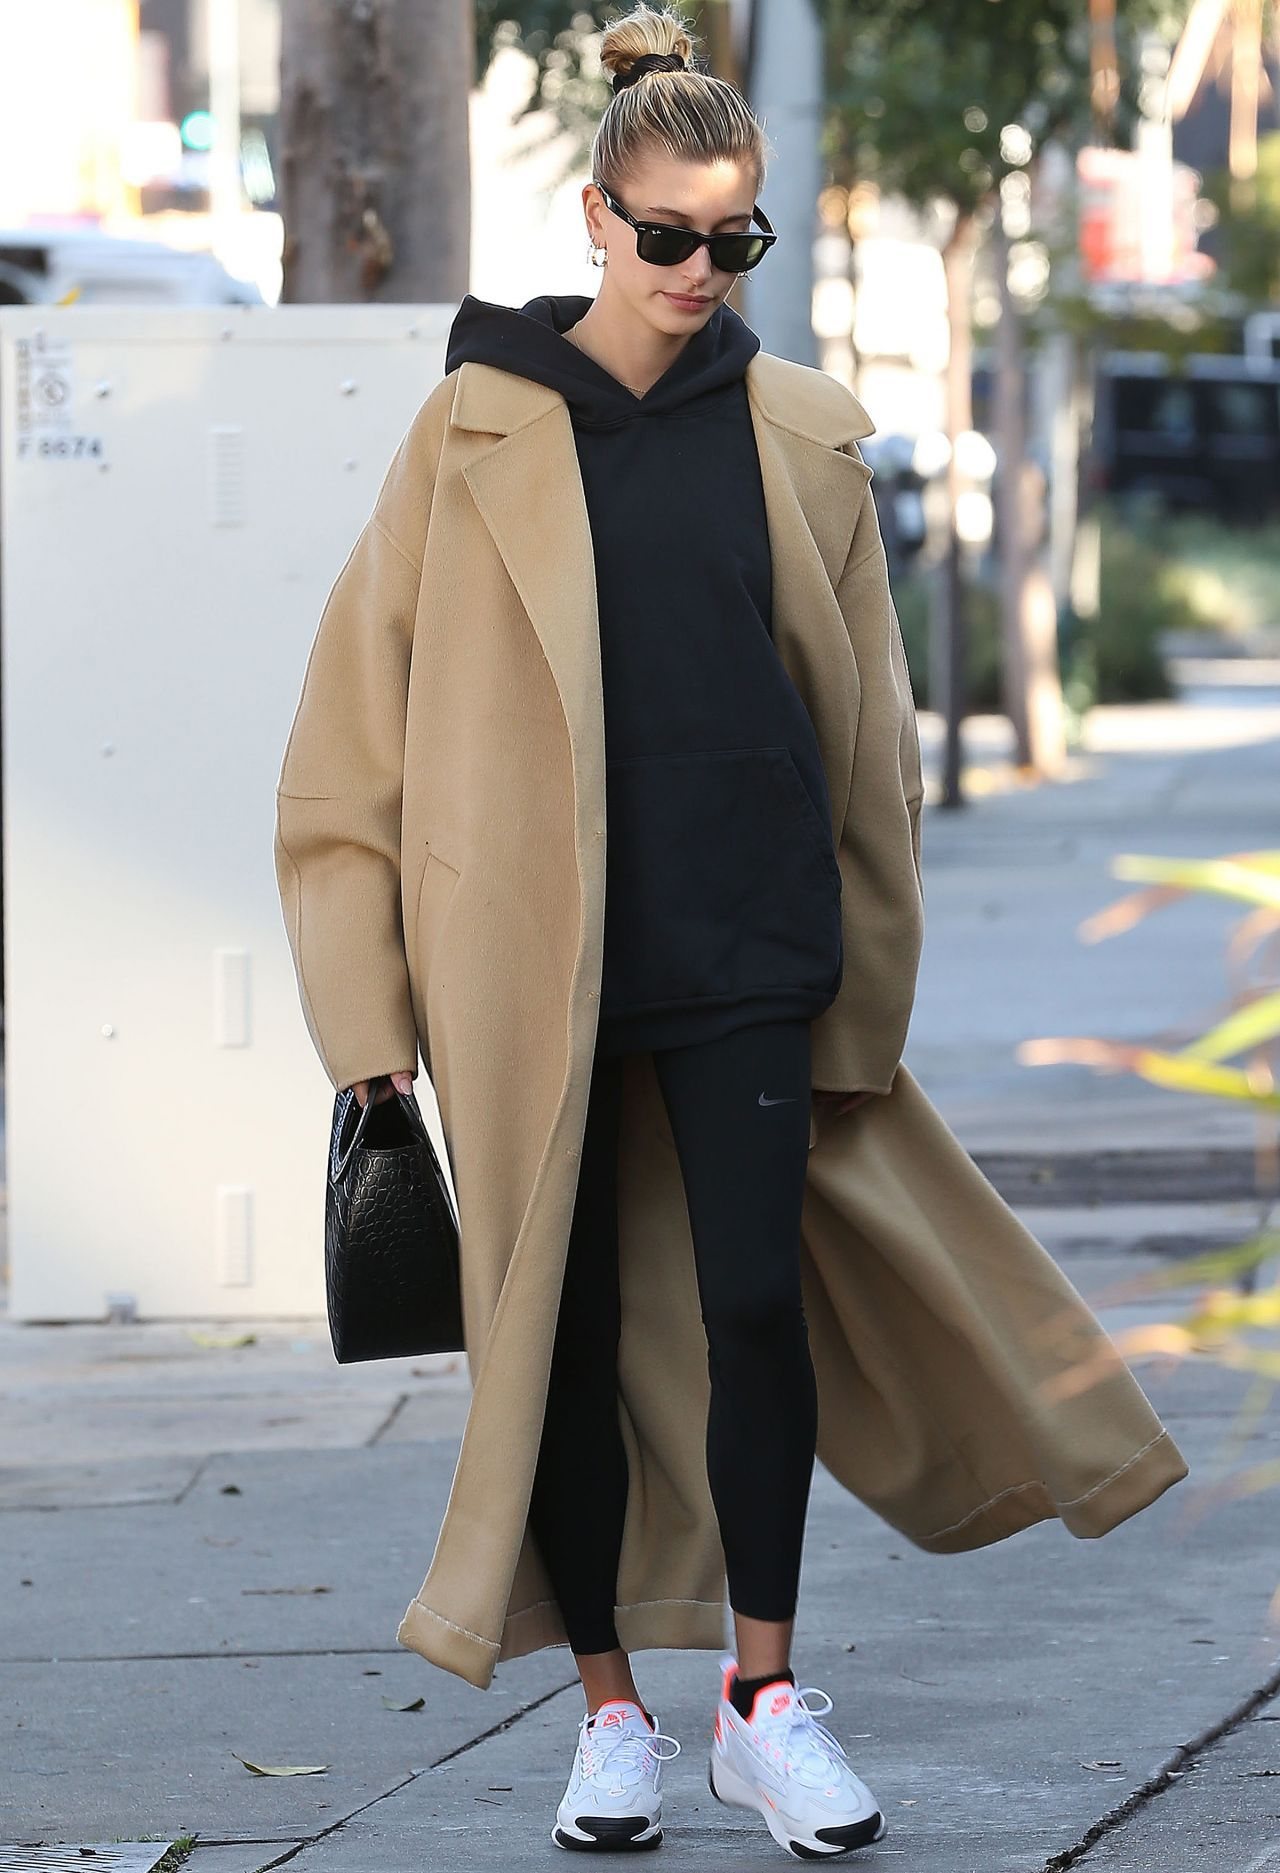 Hailey Bieber Out in Beverly Hills 12/09/2019.